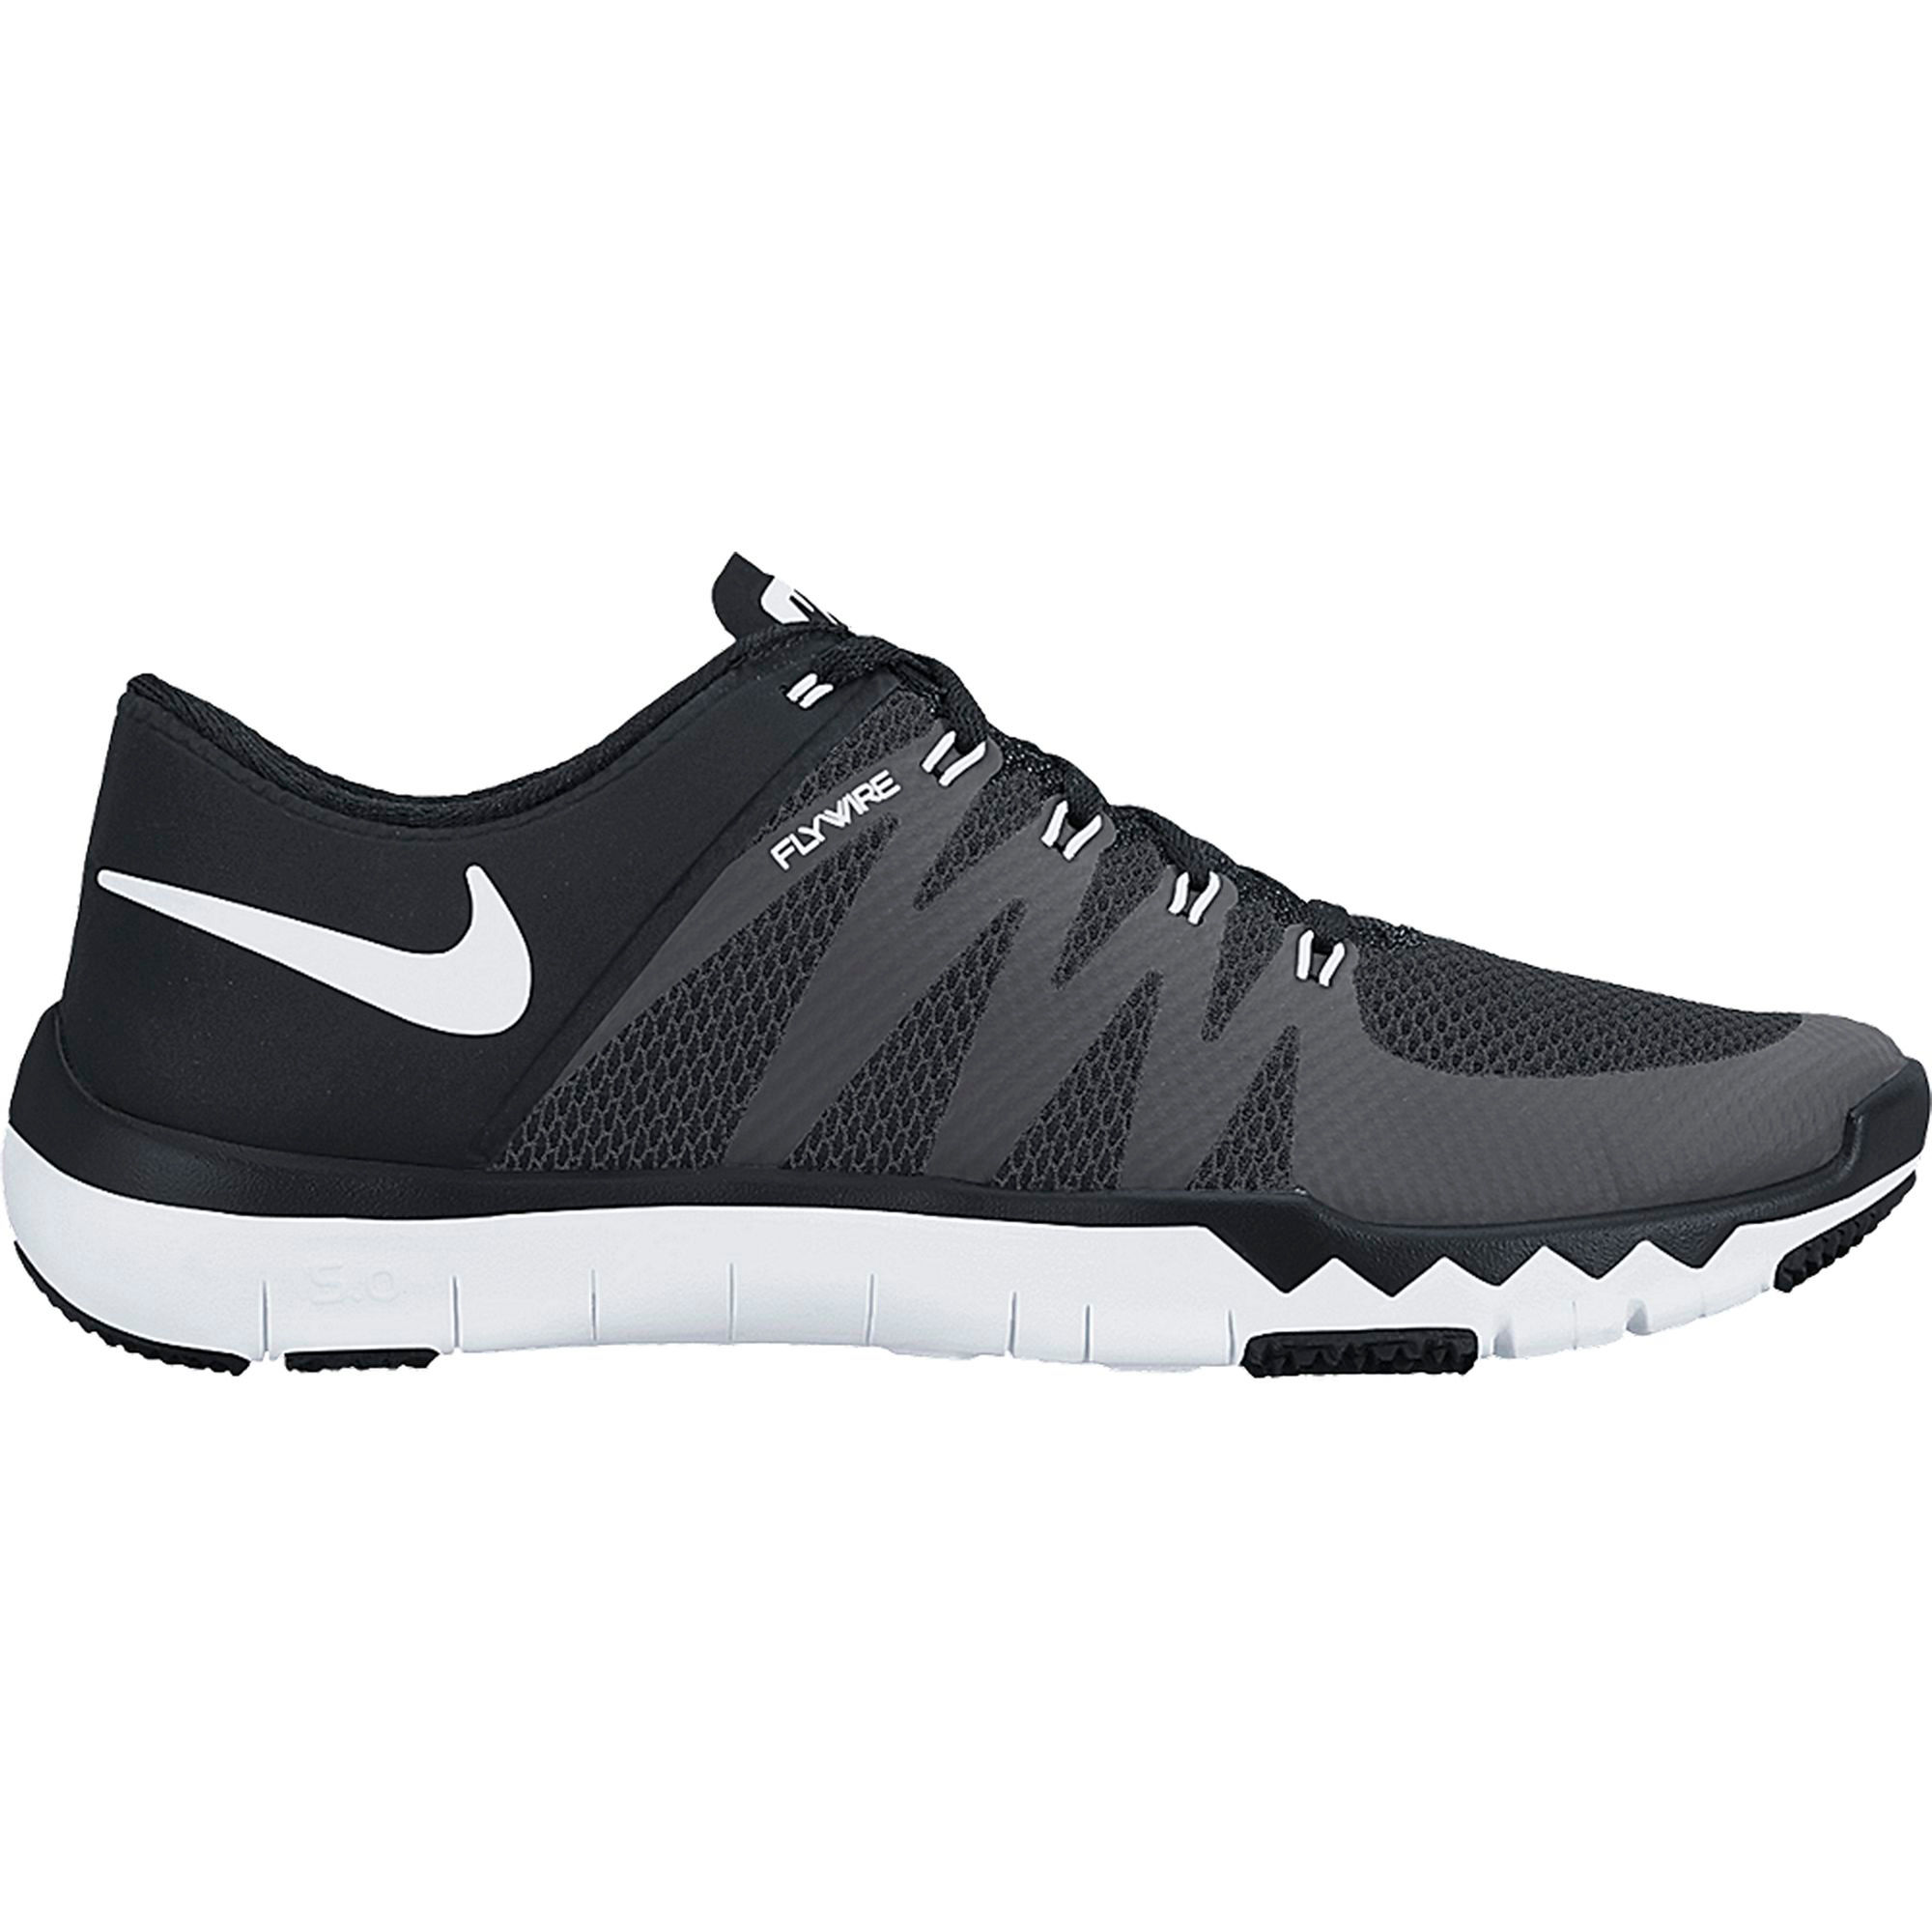 wiggle nike free trainer 5 0 v6 shoes su15 training running shoes. Black Bedroom Furniture Sets. Home Design Ideas